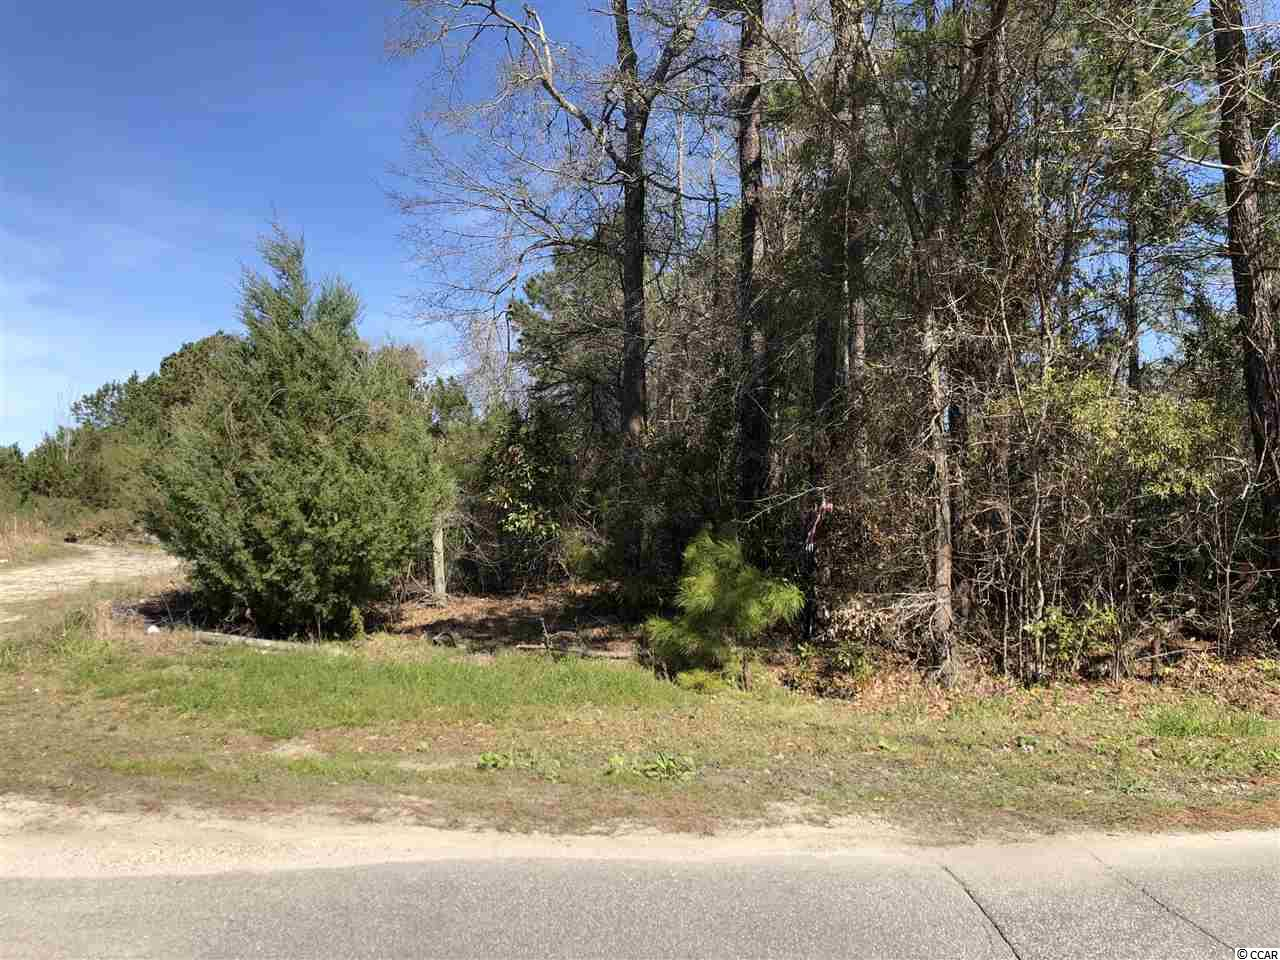 North Myrtle Beach and Little River area.  Acres. Conveniently located off Robert Edge Parkway between North Myrtle Beach Main St. Connector and the new North Myrtle Beach Sports Complex. Well sought after up and coming growing area. Central to North Myrtle Beach and Little River. Excellent opportunity for home site, development and/ or business opportunity. Close to shoppes, restaurants, retail outlets, sports grills, golf, fishing, Intra Coastal Waterway (ICW) and most beautiful white sandy ocean beaches of the Grand Strand.